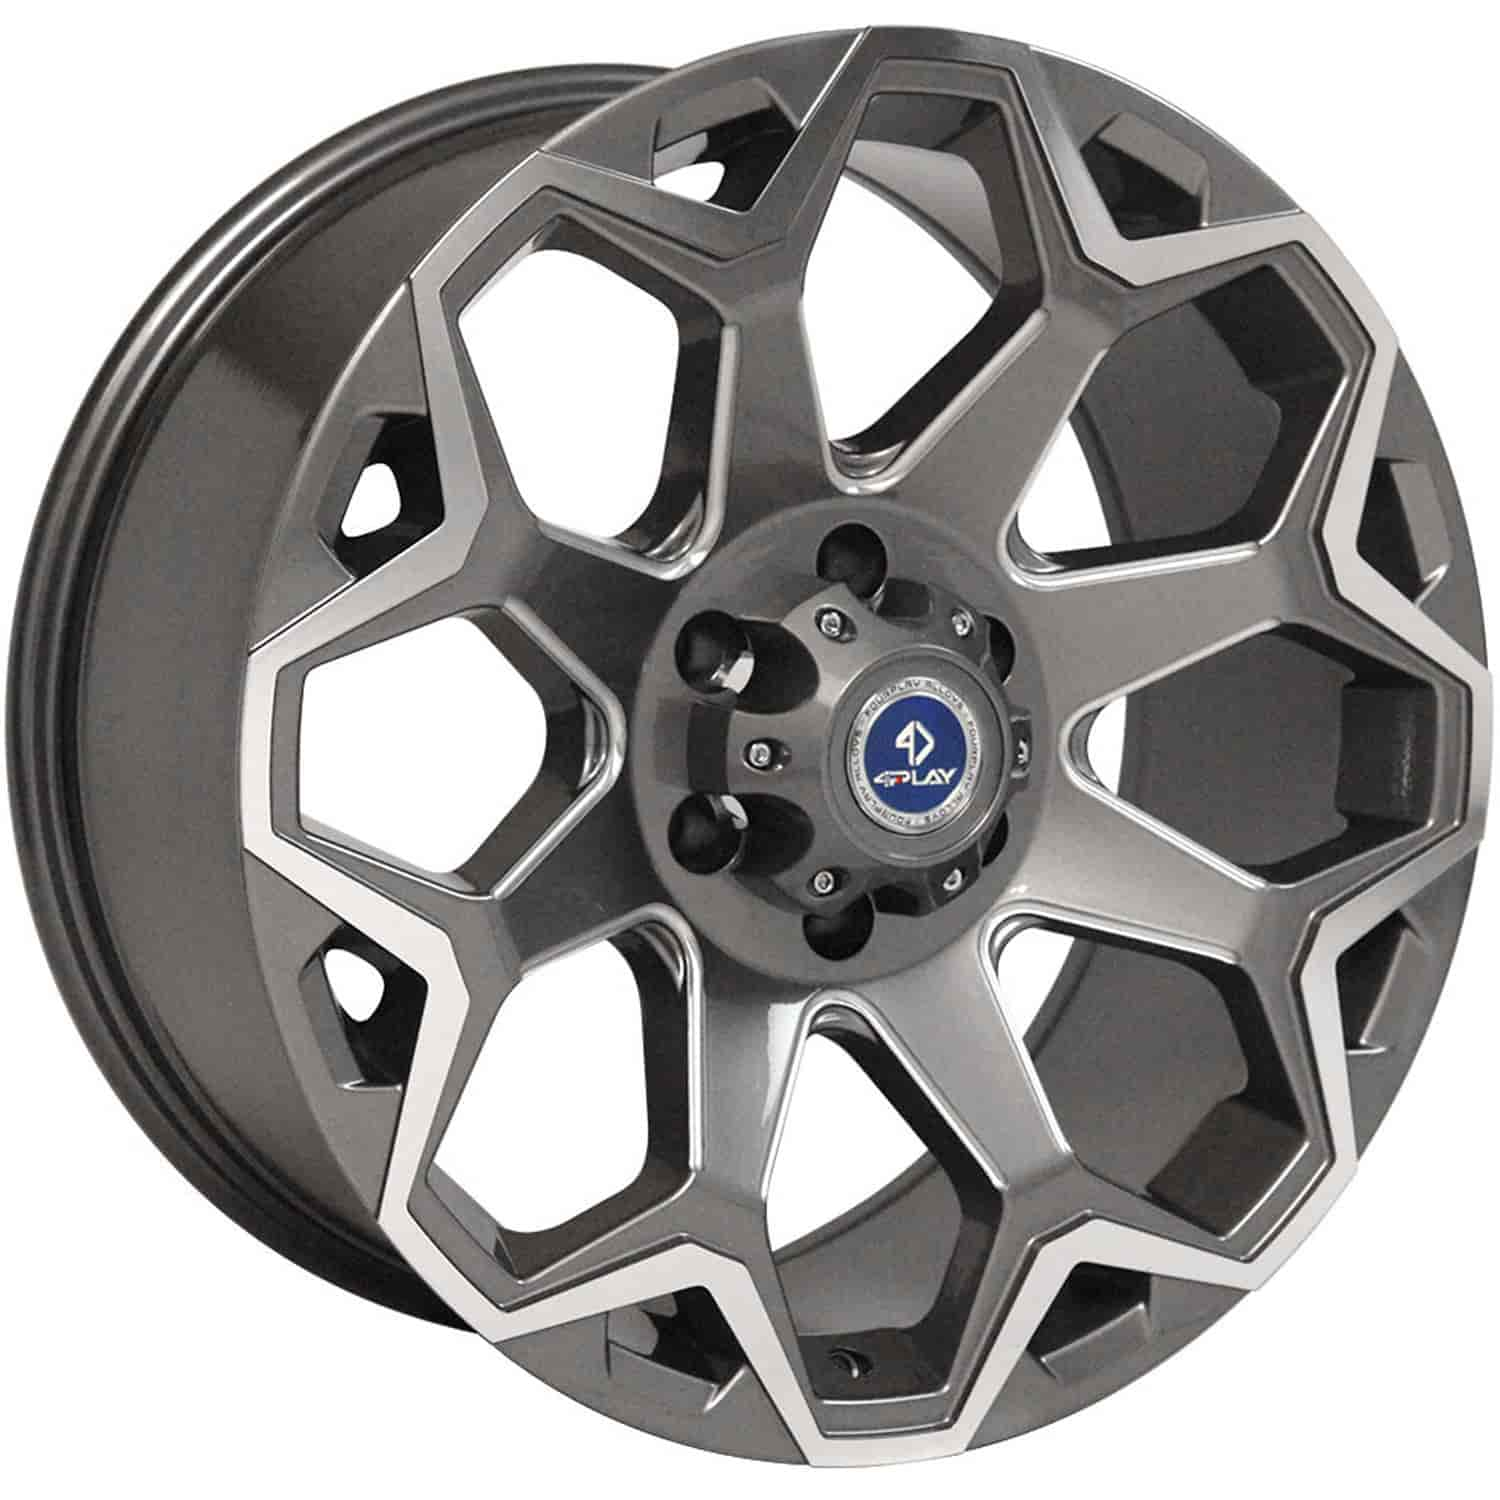 OE Wheels 9506643